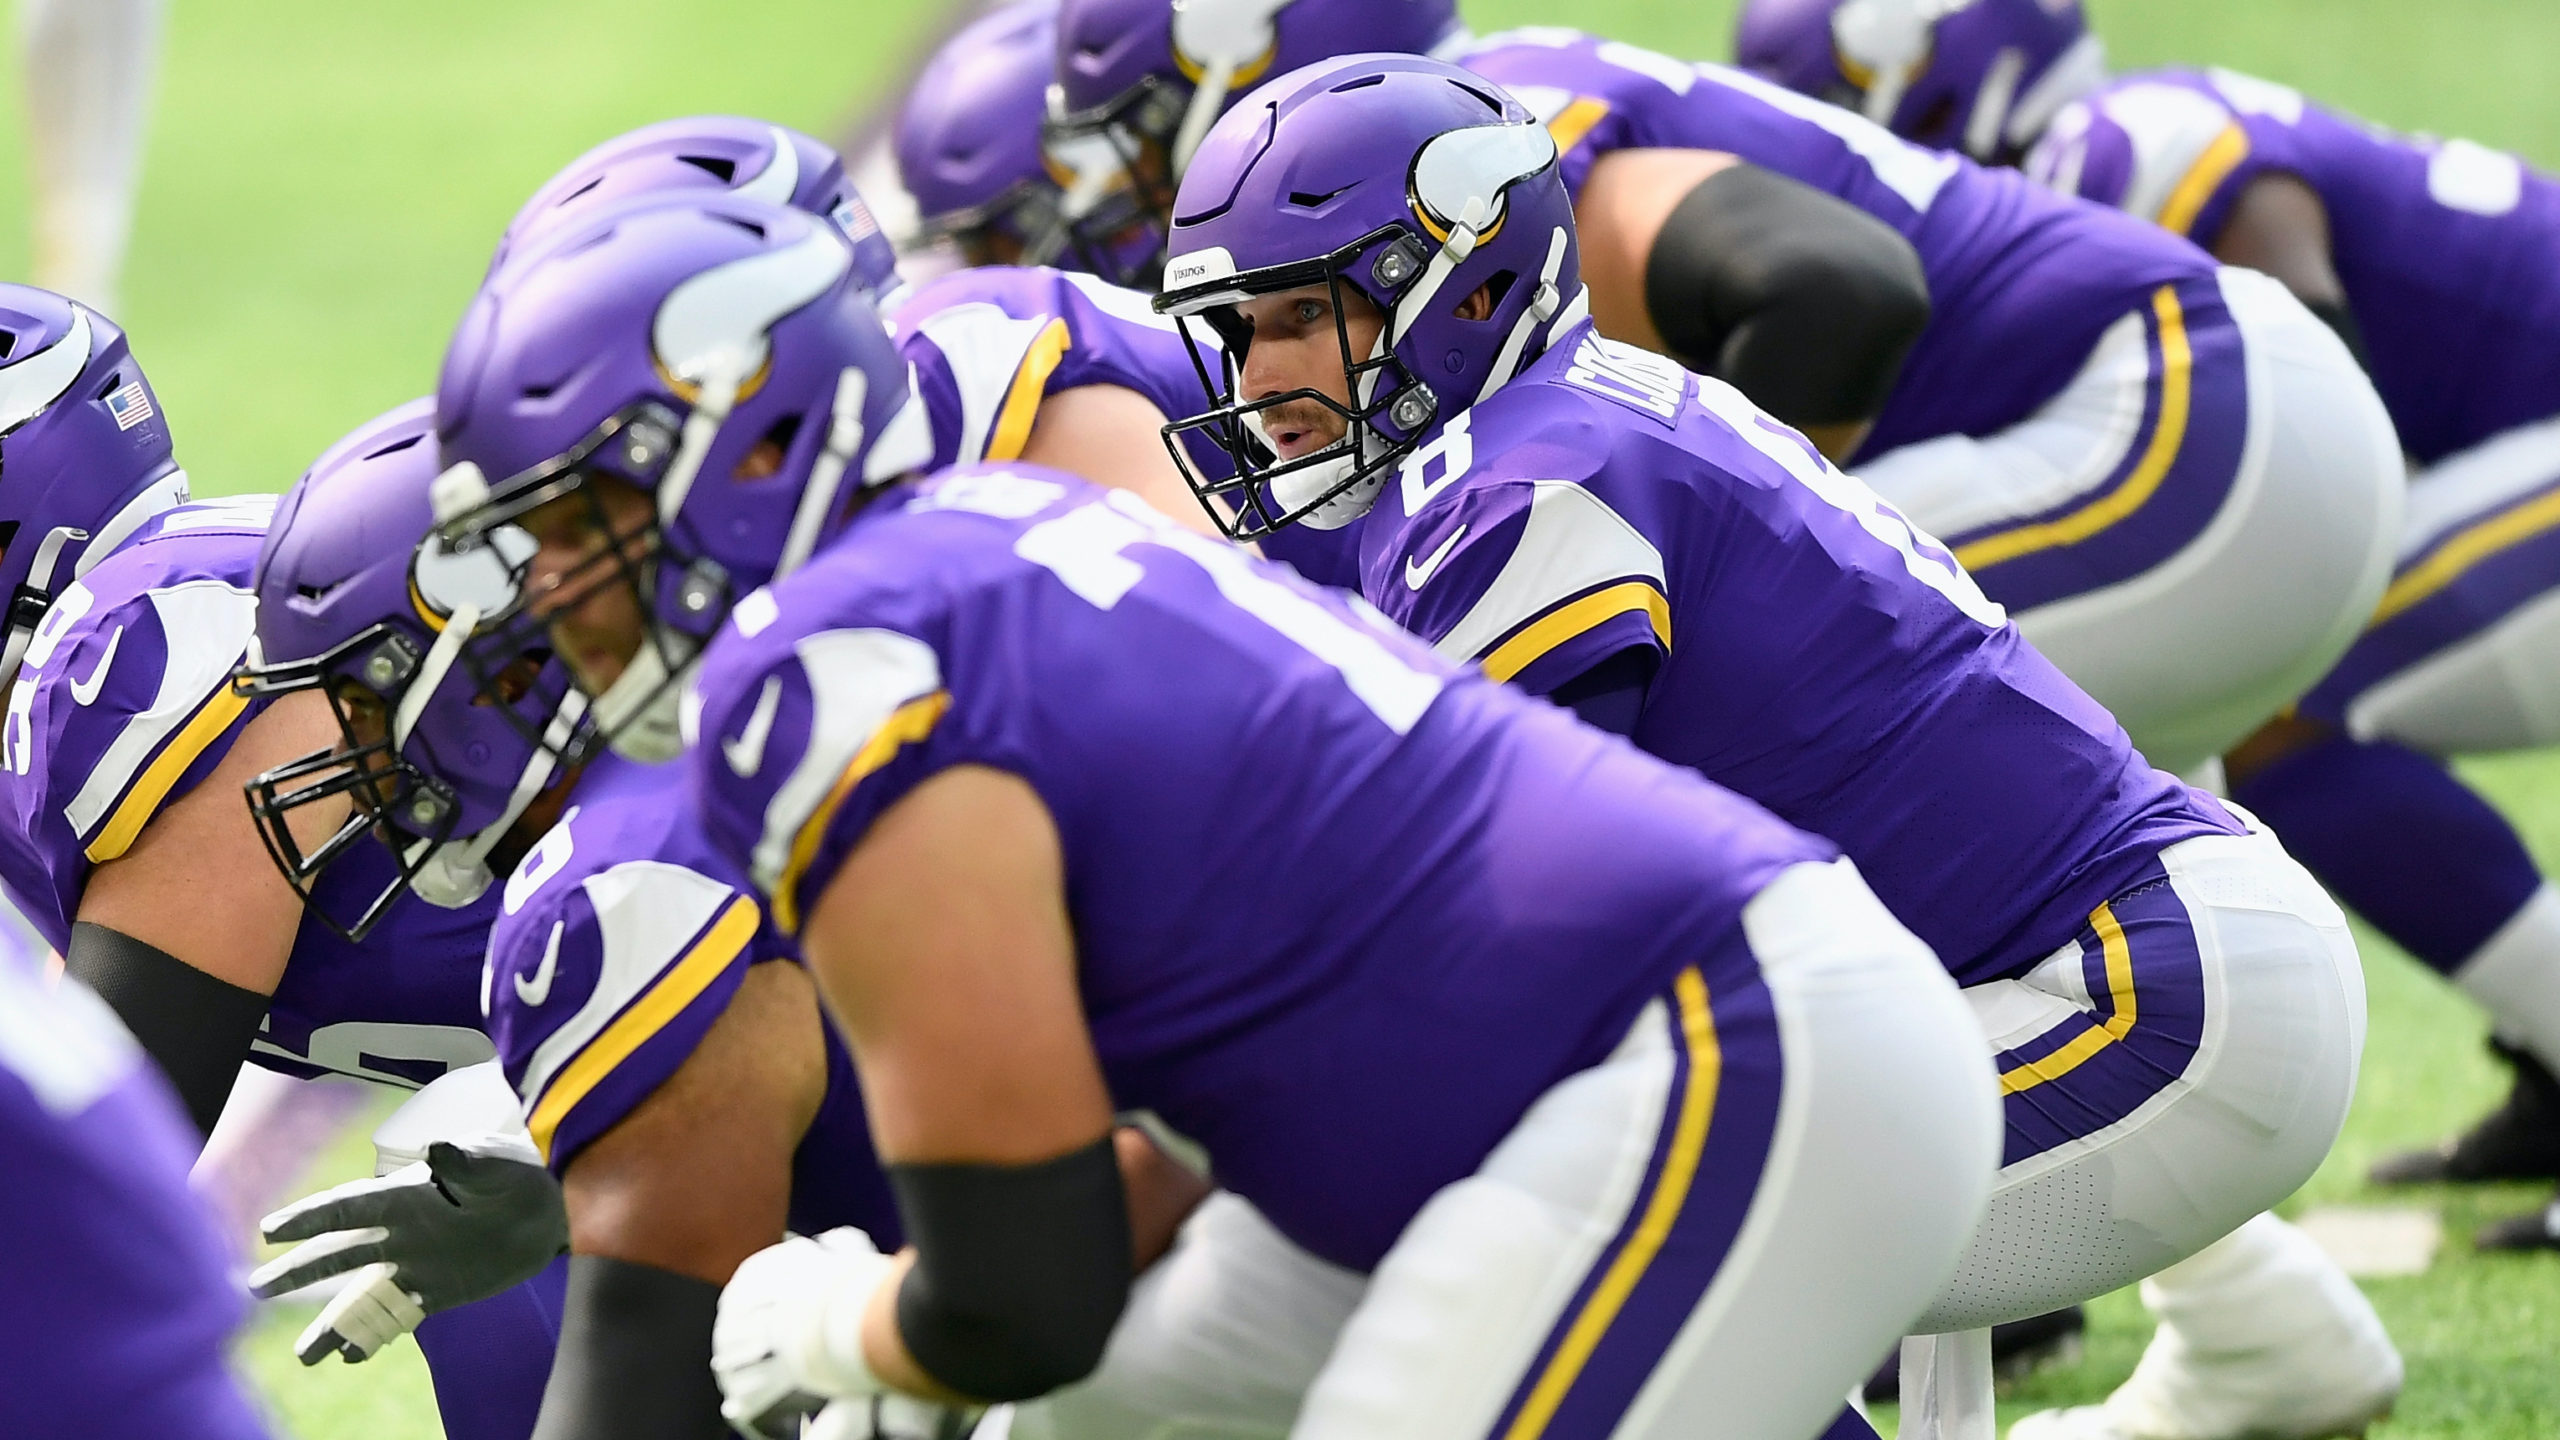 Freedman's NFL Week 6 Trends & Early Bets: Get-Right Spot for Vikings vs. Struggling Falcons article feature image